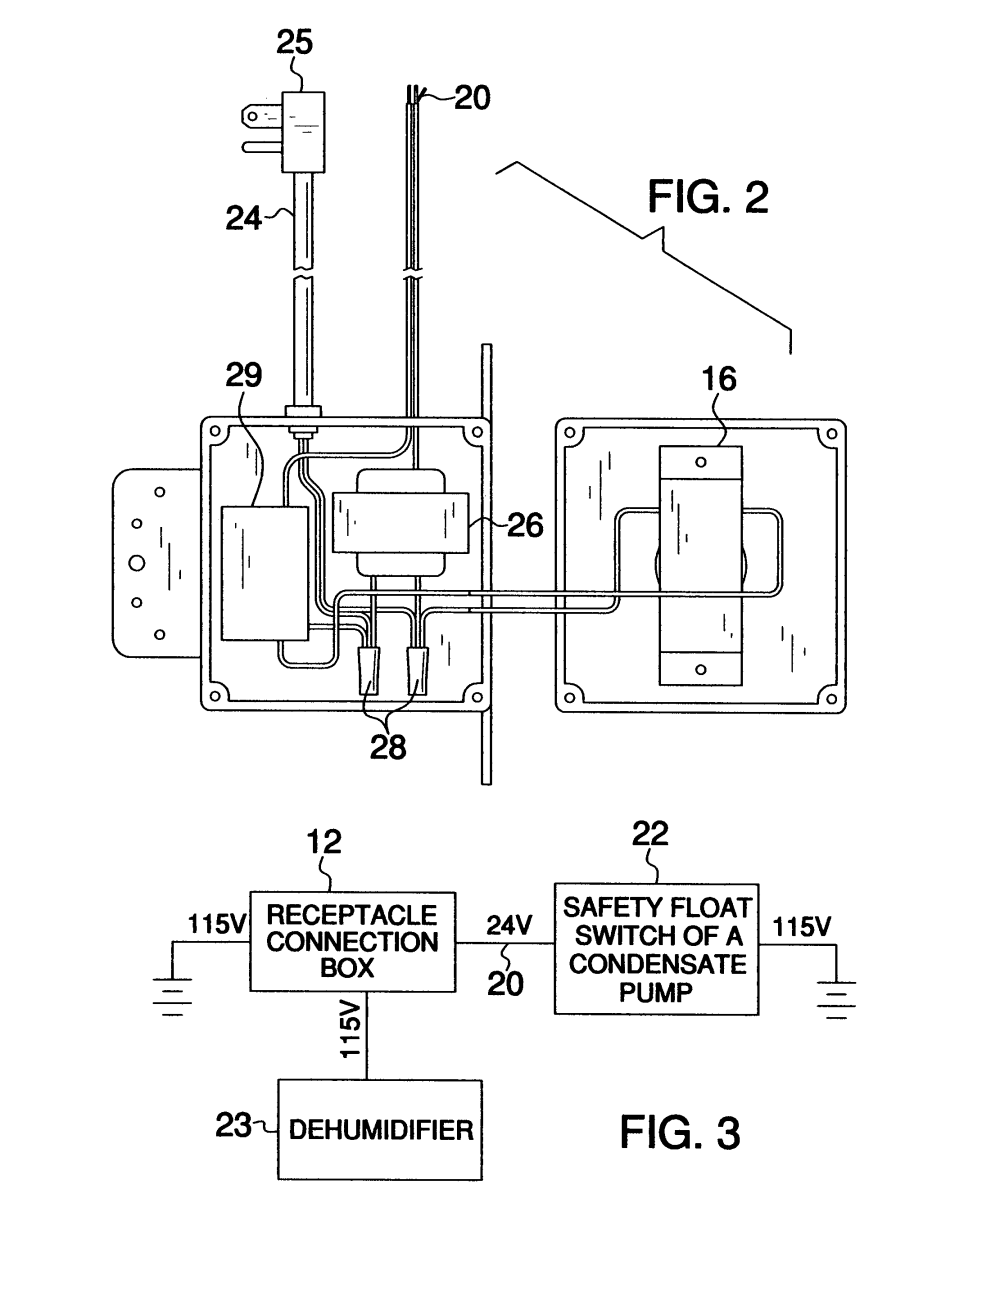 medium resolution of us07419405 20080902 d00002 patent us7419405 dehumidifier safety cut off system google patents clearvue mini pump wiring